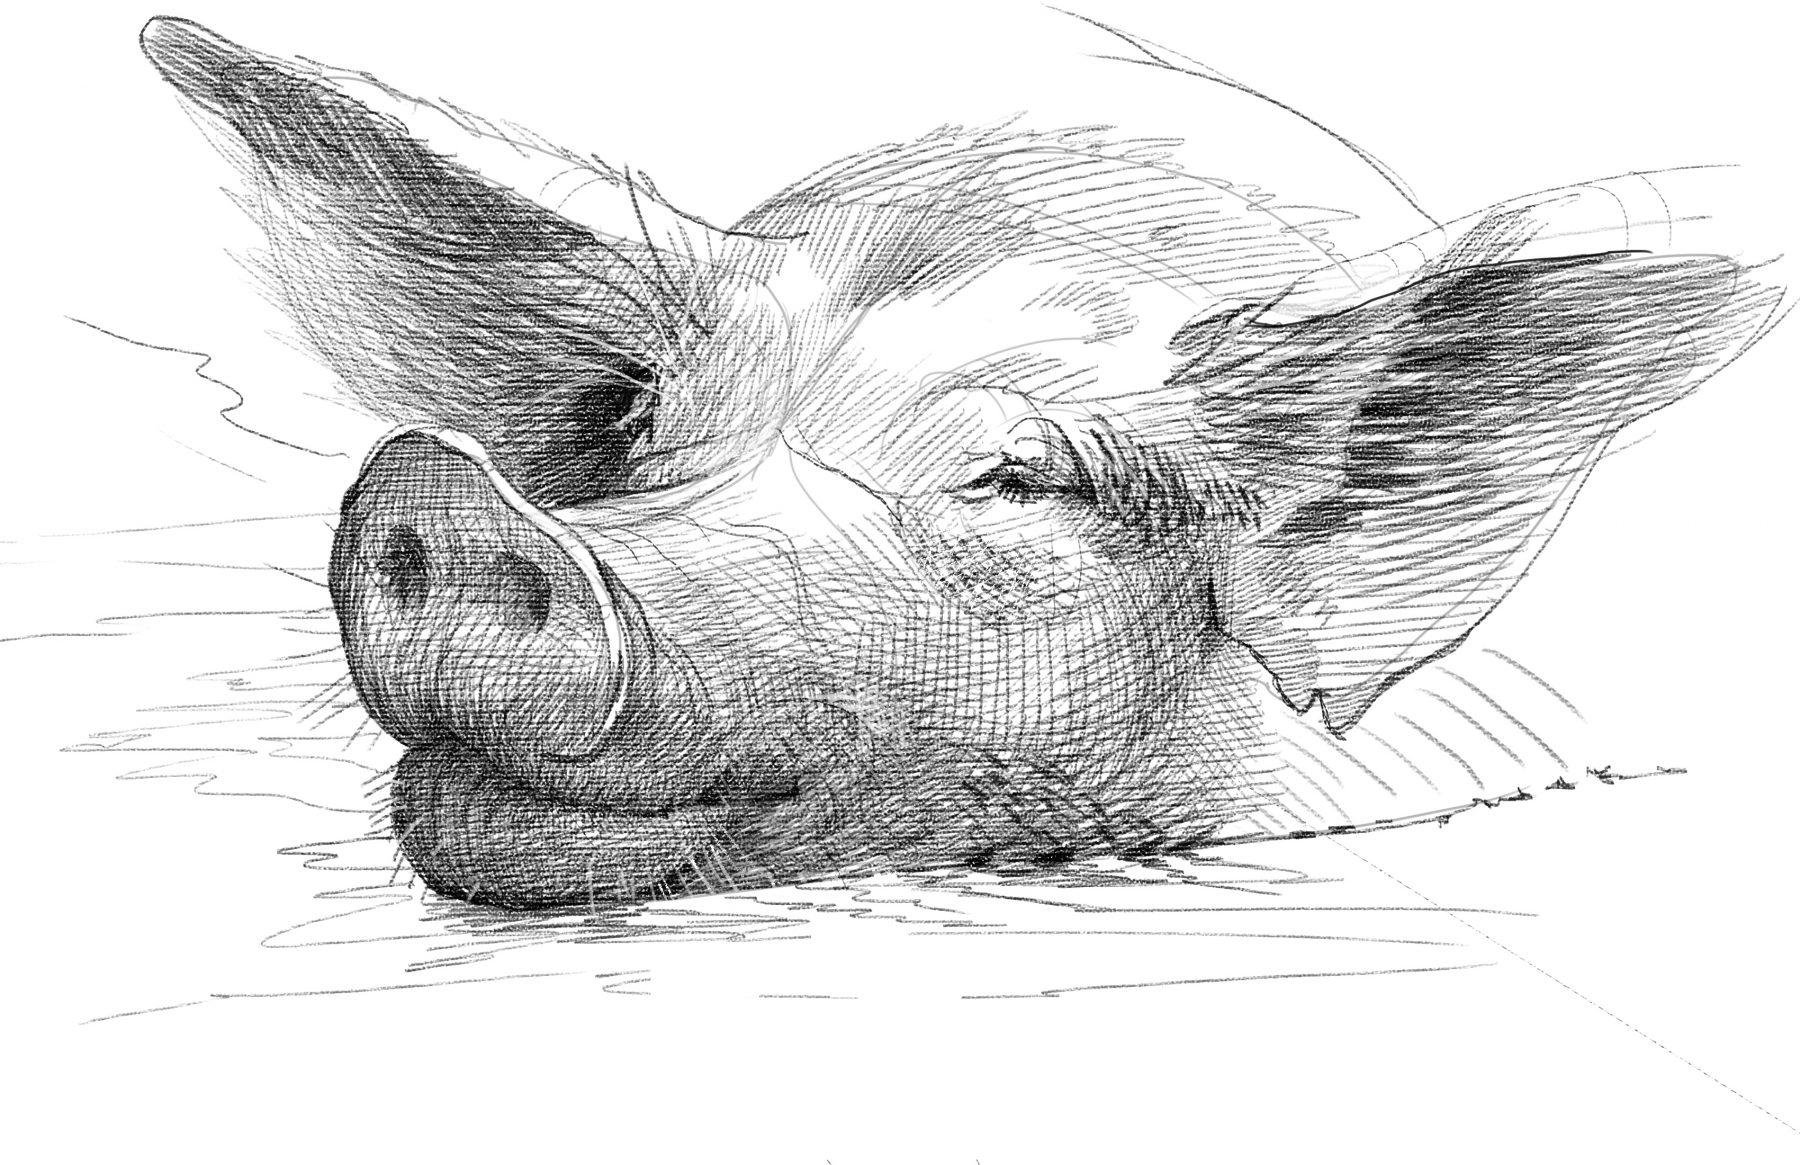 Pig digital drawing downloadable or mailed